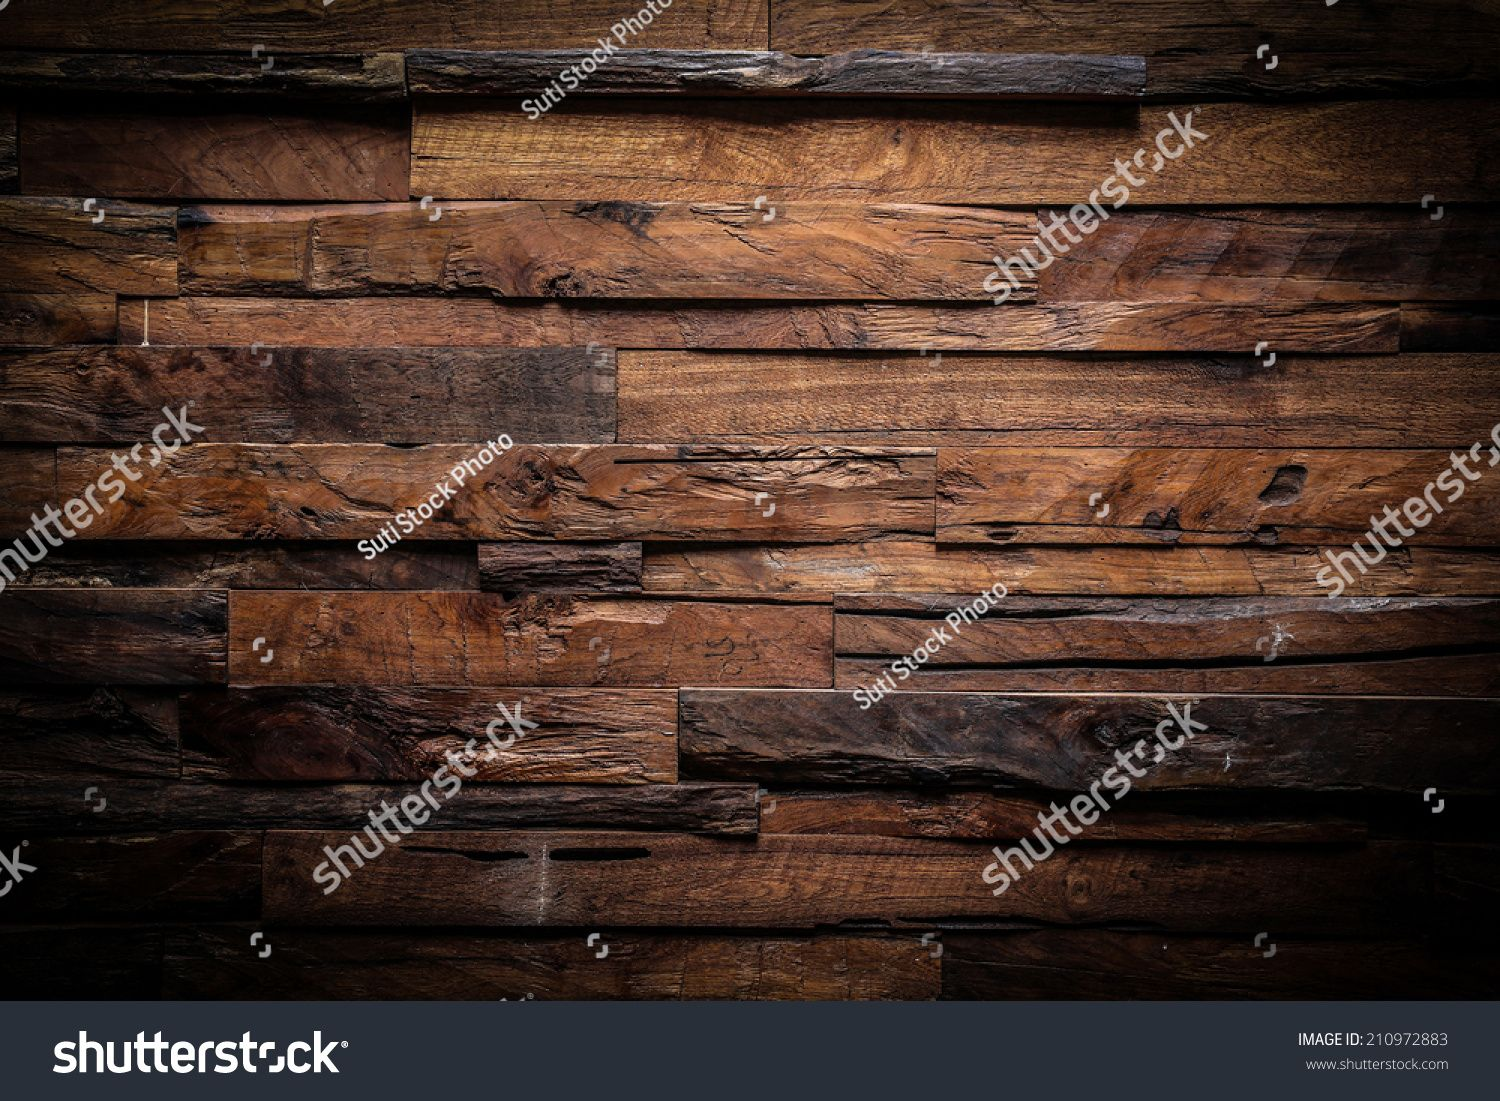 design of dark wood texture background #Sponsored , #SPONSORED, #dark#design#wood#background #woodtexturebackground